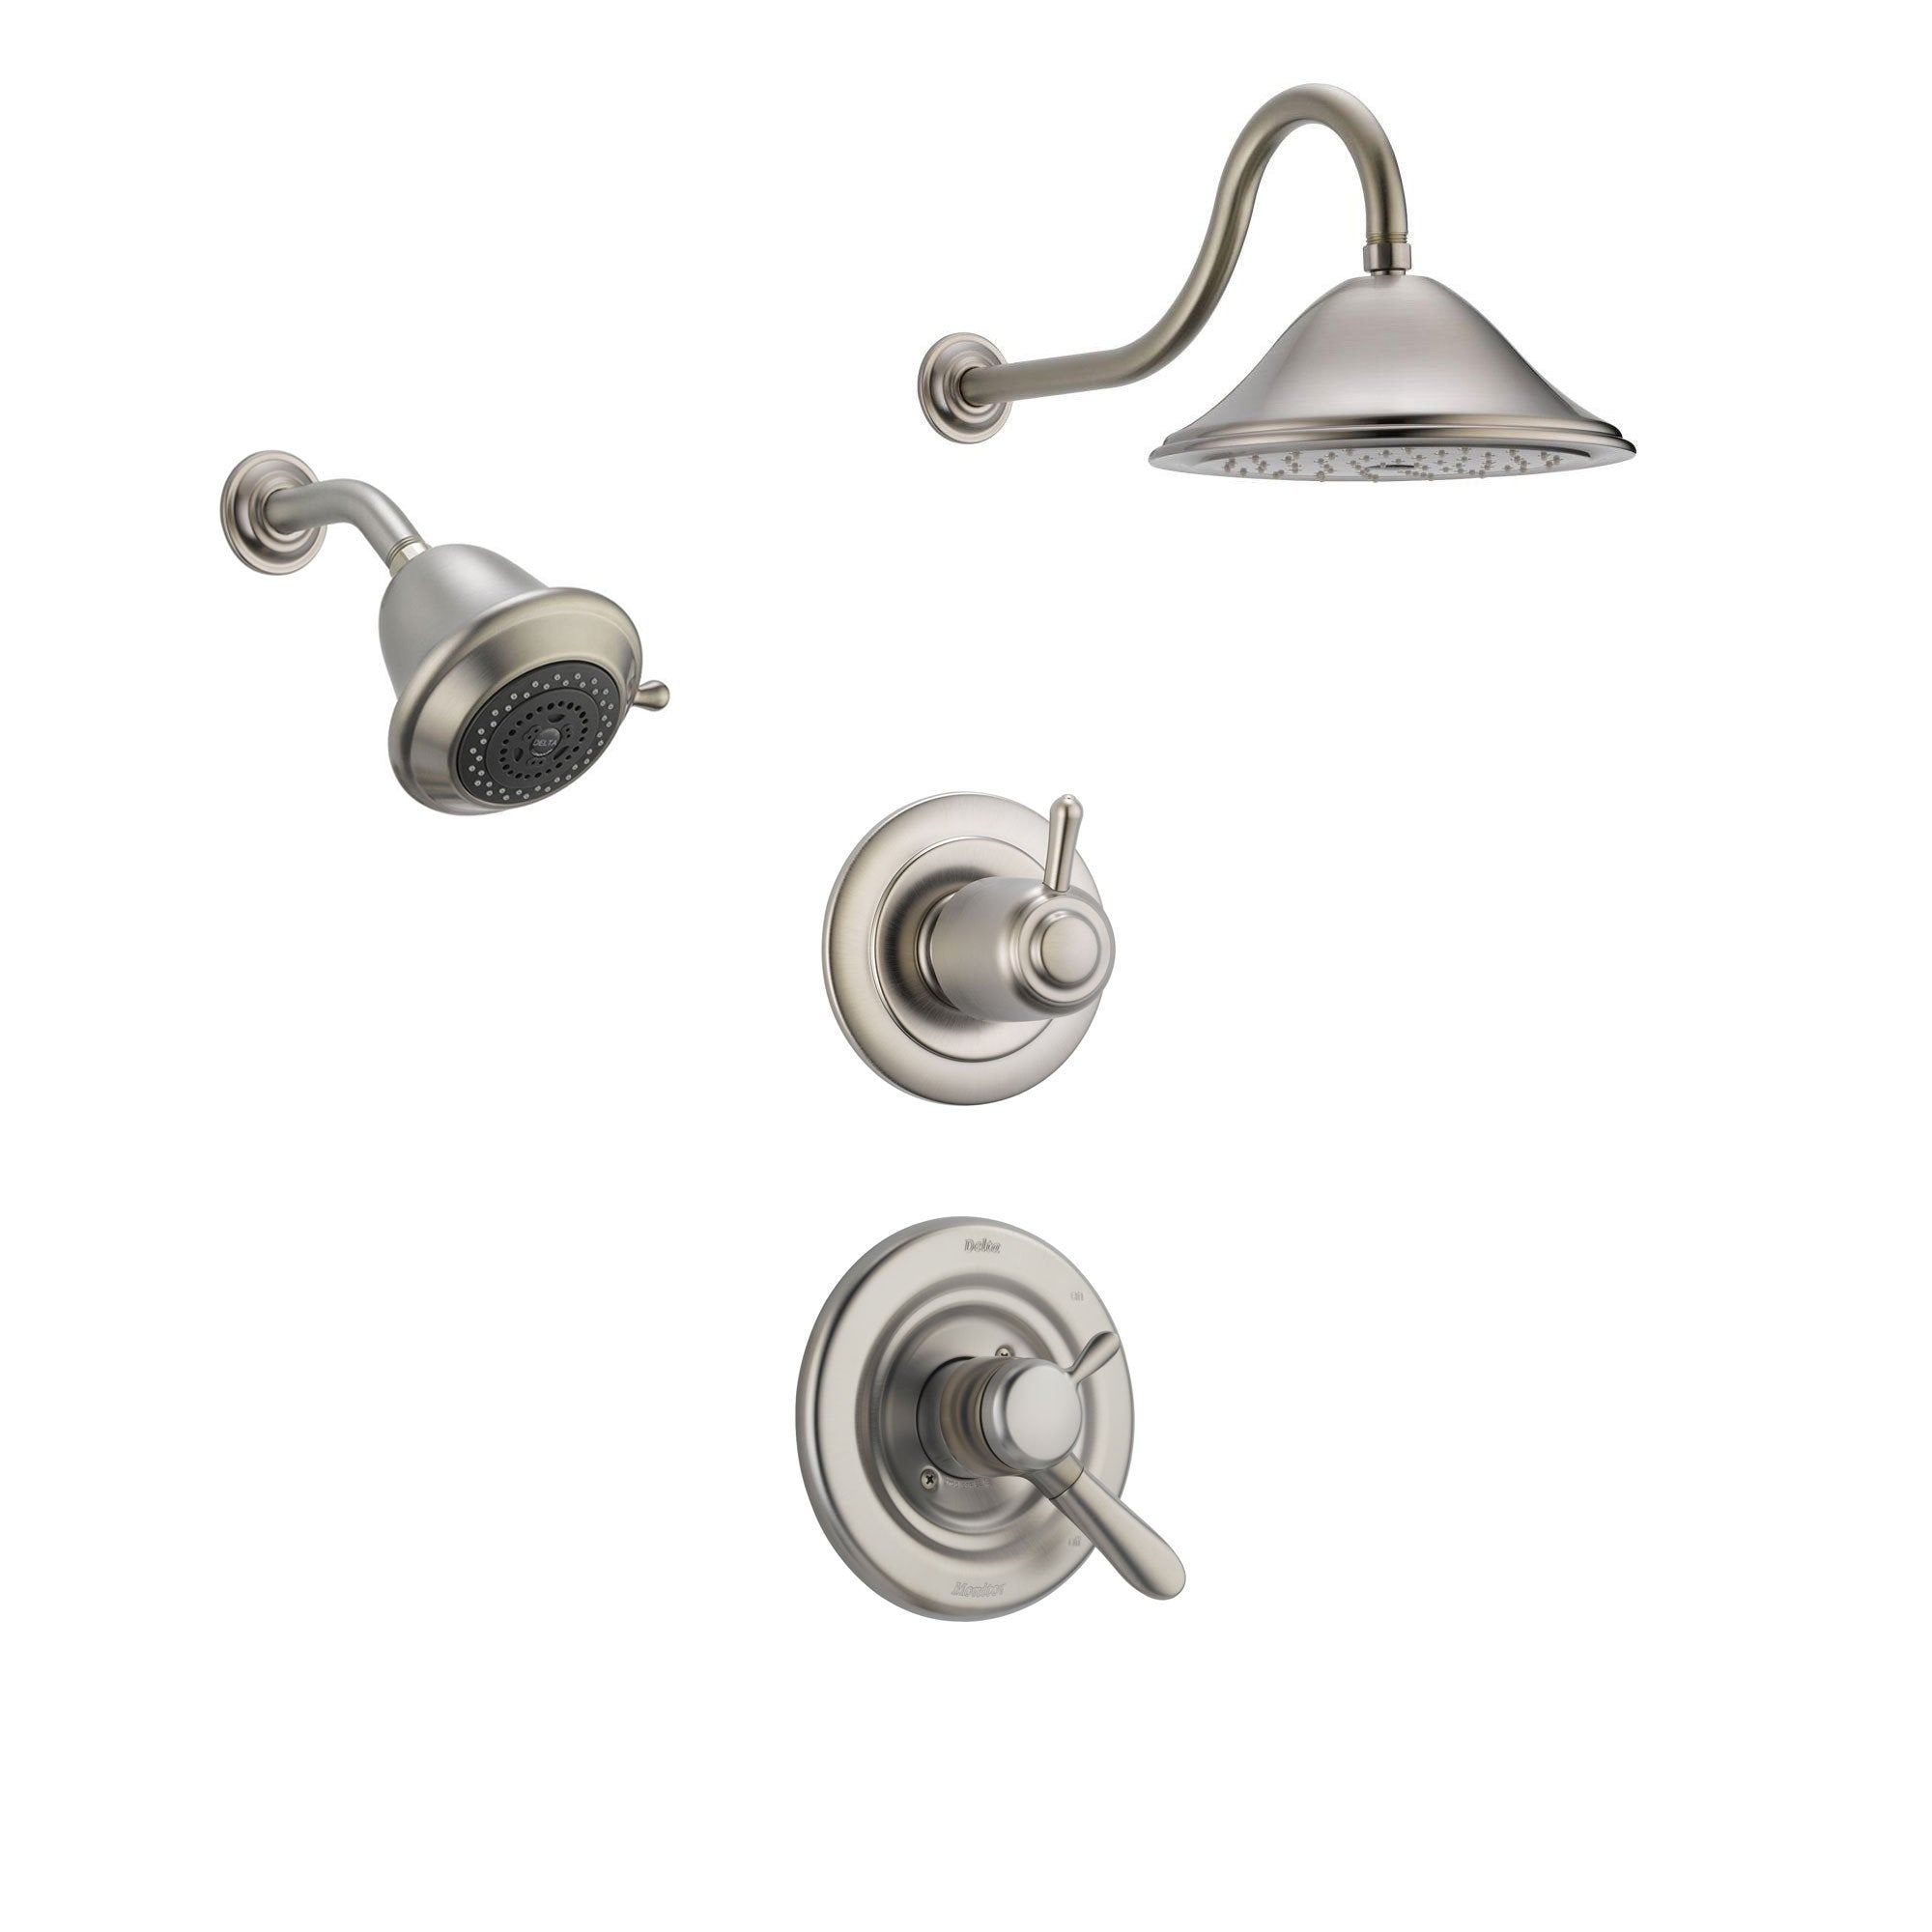 Delta Lahara Stainless Steel Shower System with Dual Control Shower Handle, 3-setting Diverter, Large Rain Showerhead, and Smaller Wall Mount Showerhead SS173883SS